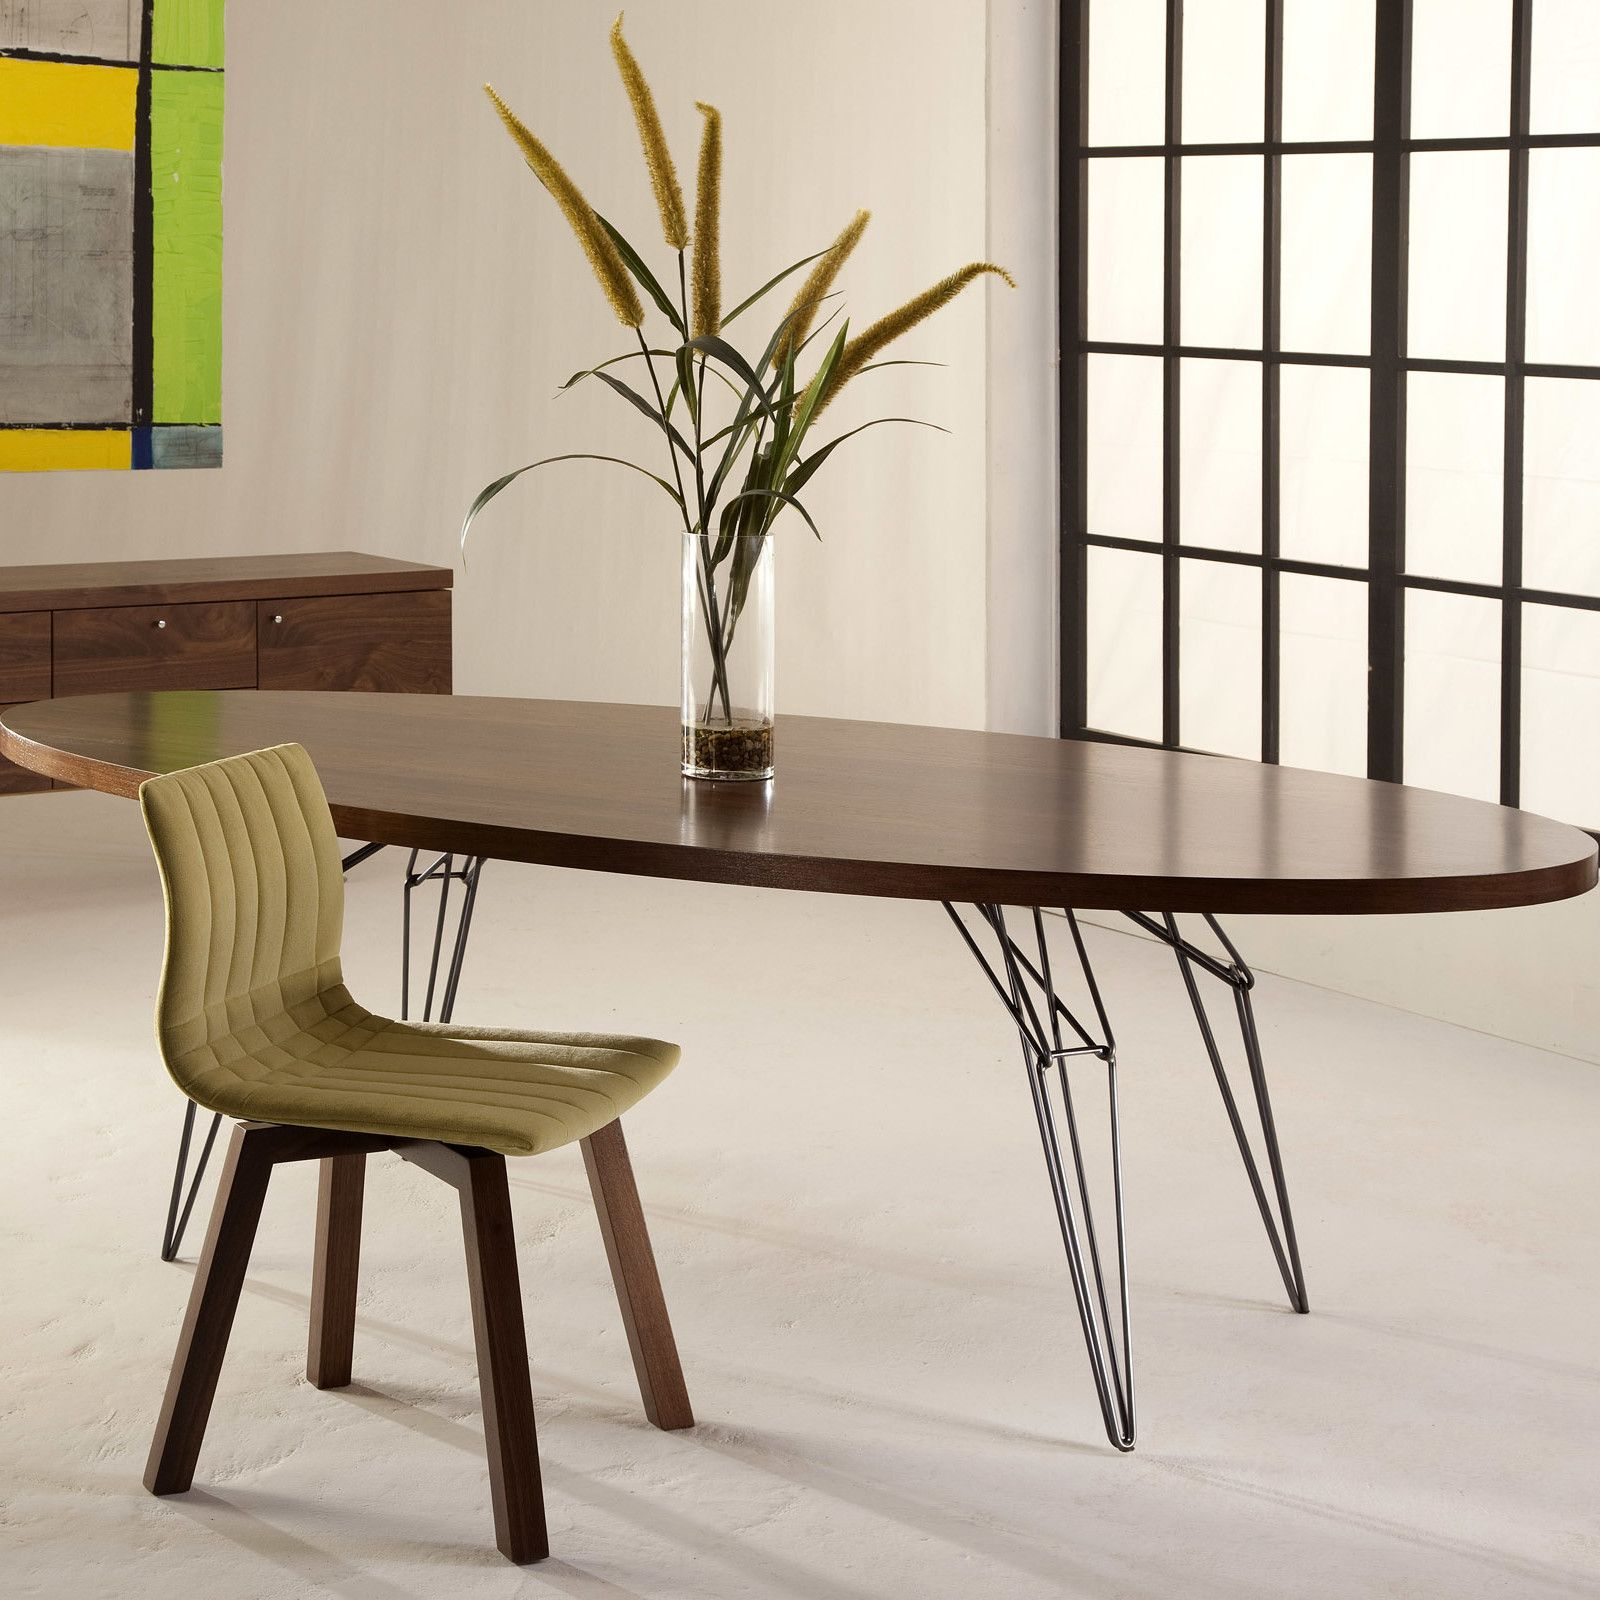 Marvelous Saloom Furniture Lem Dining Table Allmodern Uws Dining Caraccident5 Cool Chair Designs And Ideas Caraccident5Info